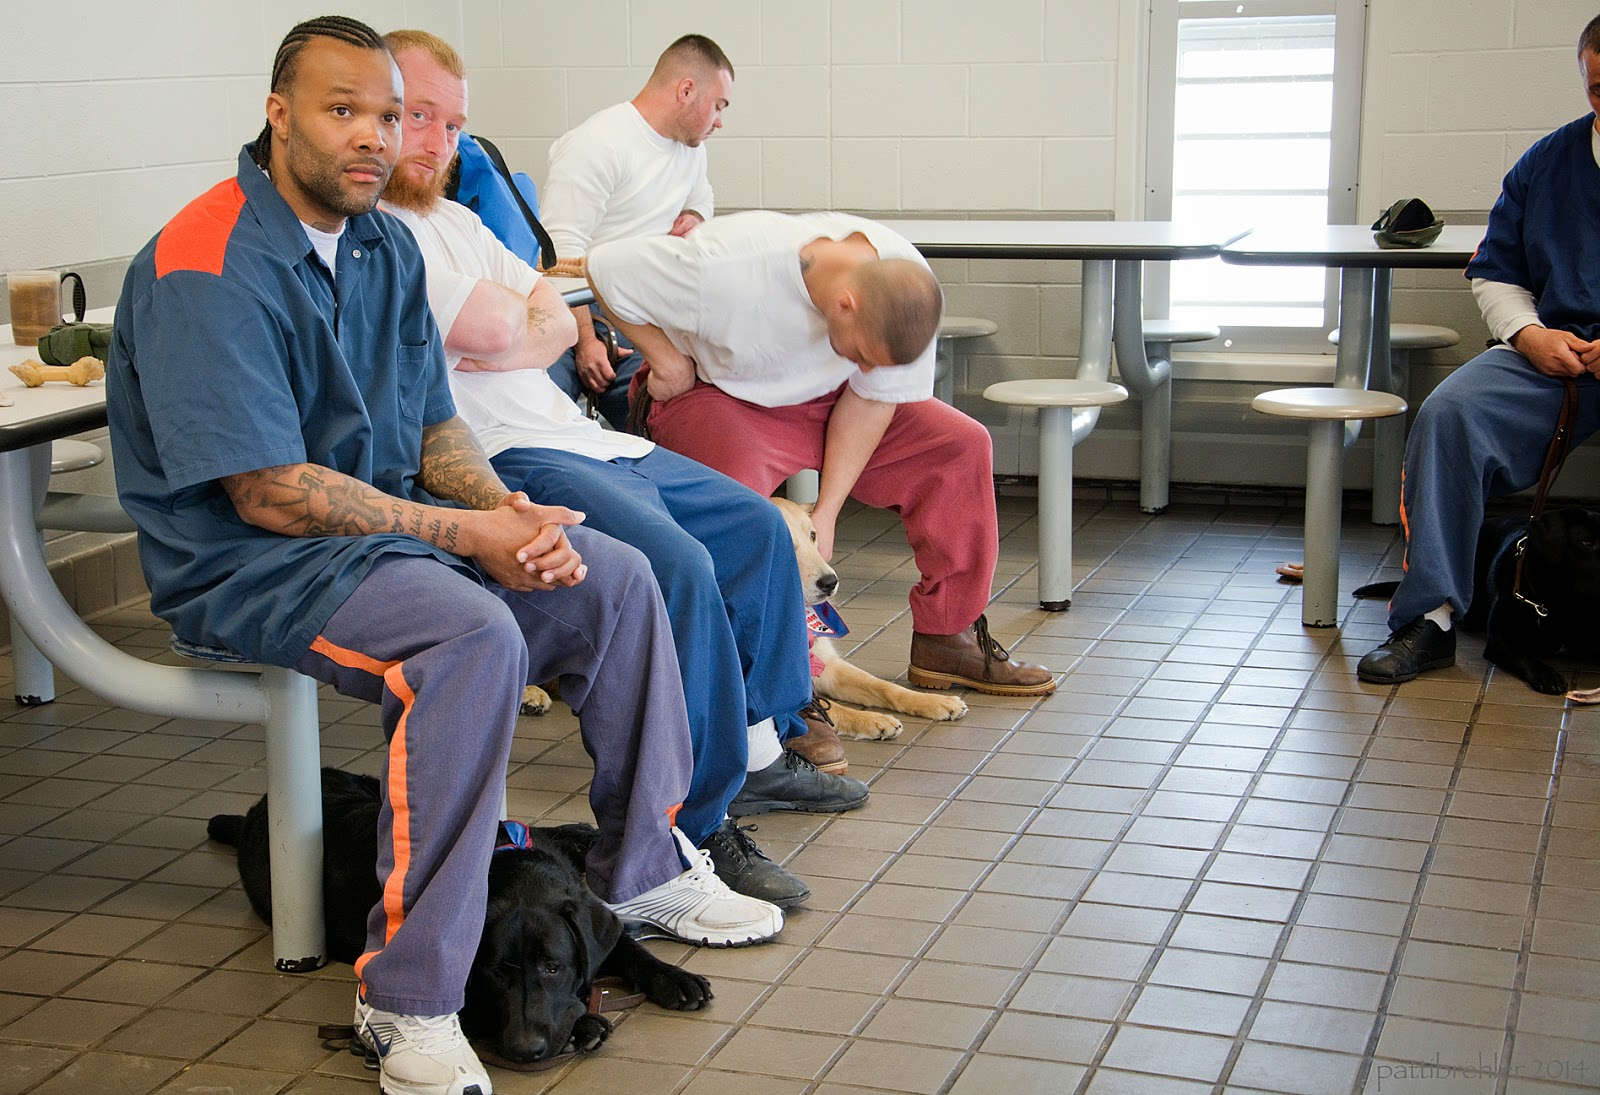 Four men sit on stools attached to a table on the left side of the picture. On man sits just out of view on the right side. The first man is an african american wearing the prison blue uniform. He has this hands clasped on his lap and below him a black lab is lying on the tile floor. The next man is leaning back with his arms folded, he is wearing blue pants and a white t-shirt. The next man is wearing a white t-shirt and light maroon pants. He is leaning over looking down at a golden retriever that is lying under him on the floor. He is petting the puppy with his left hand and his right elbow is on the table. The fourth man is just visible behind the third man, he is wearing a white t-shirt and looking away to the right. The man out of view is wearing the prison blue uniform and hs holding the leash of a black lab that is lying on the floor between his legs.